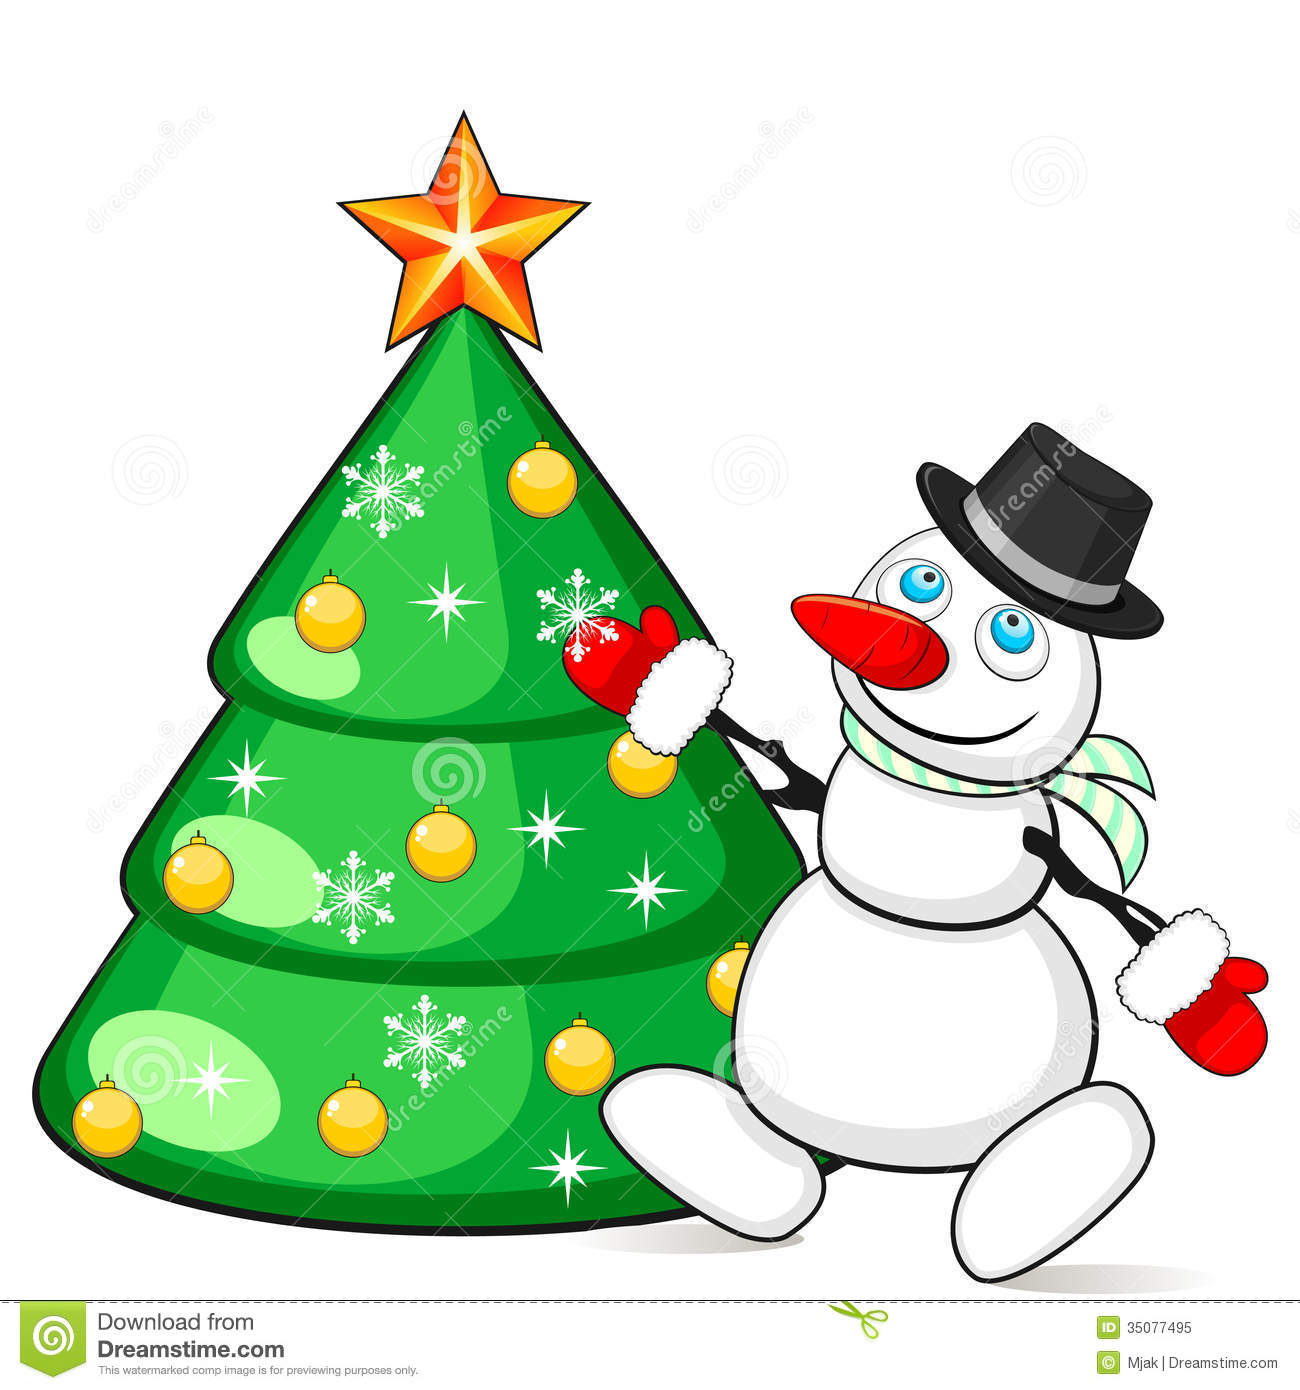 Snowman Decorating Christmas Tree Royalty Free Stock Photo - Image ...